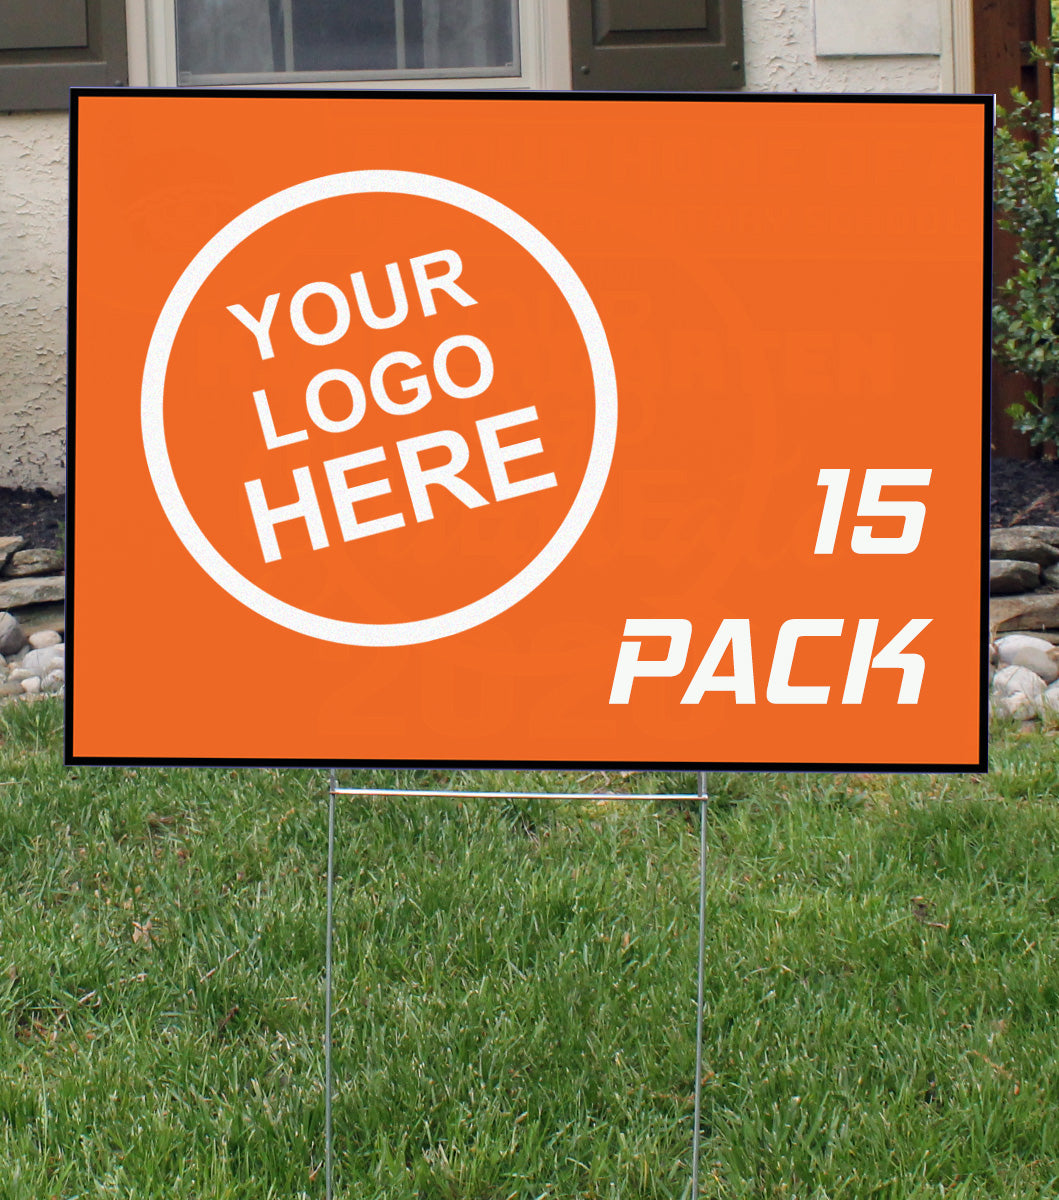 Lawn Signs | 15 Pack